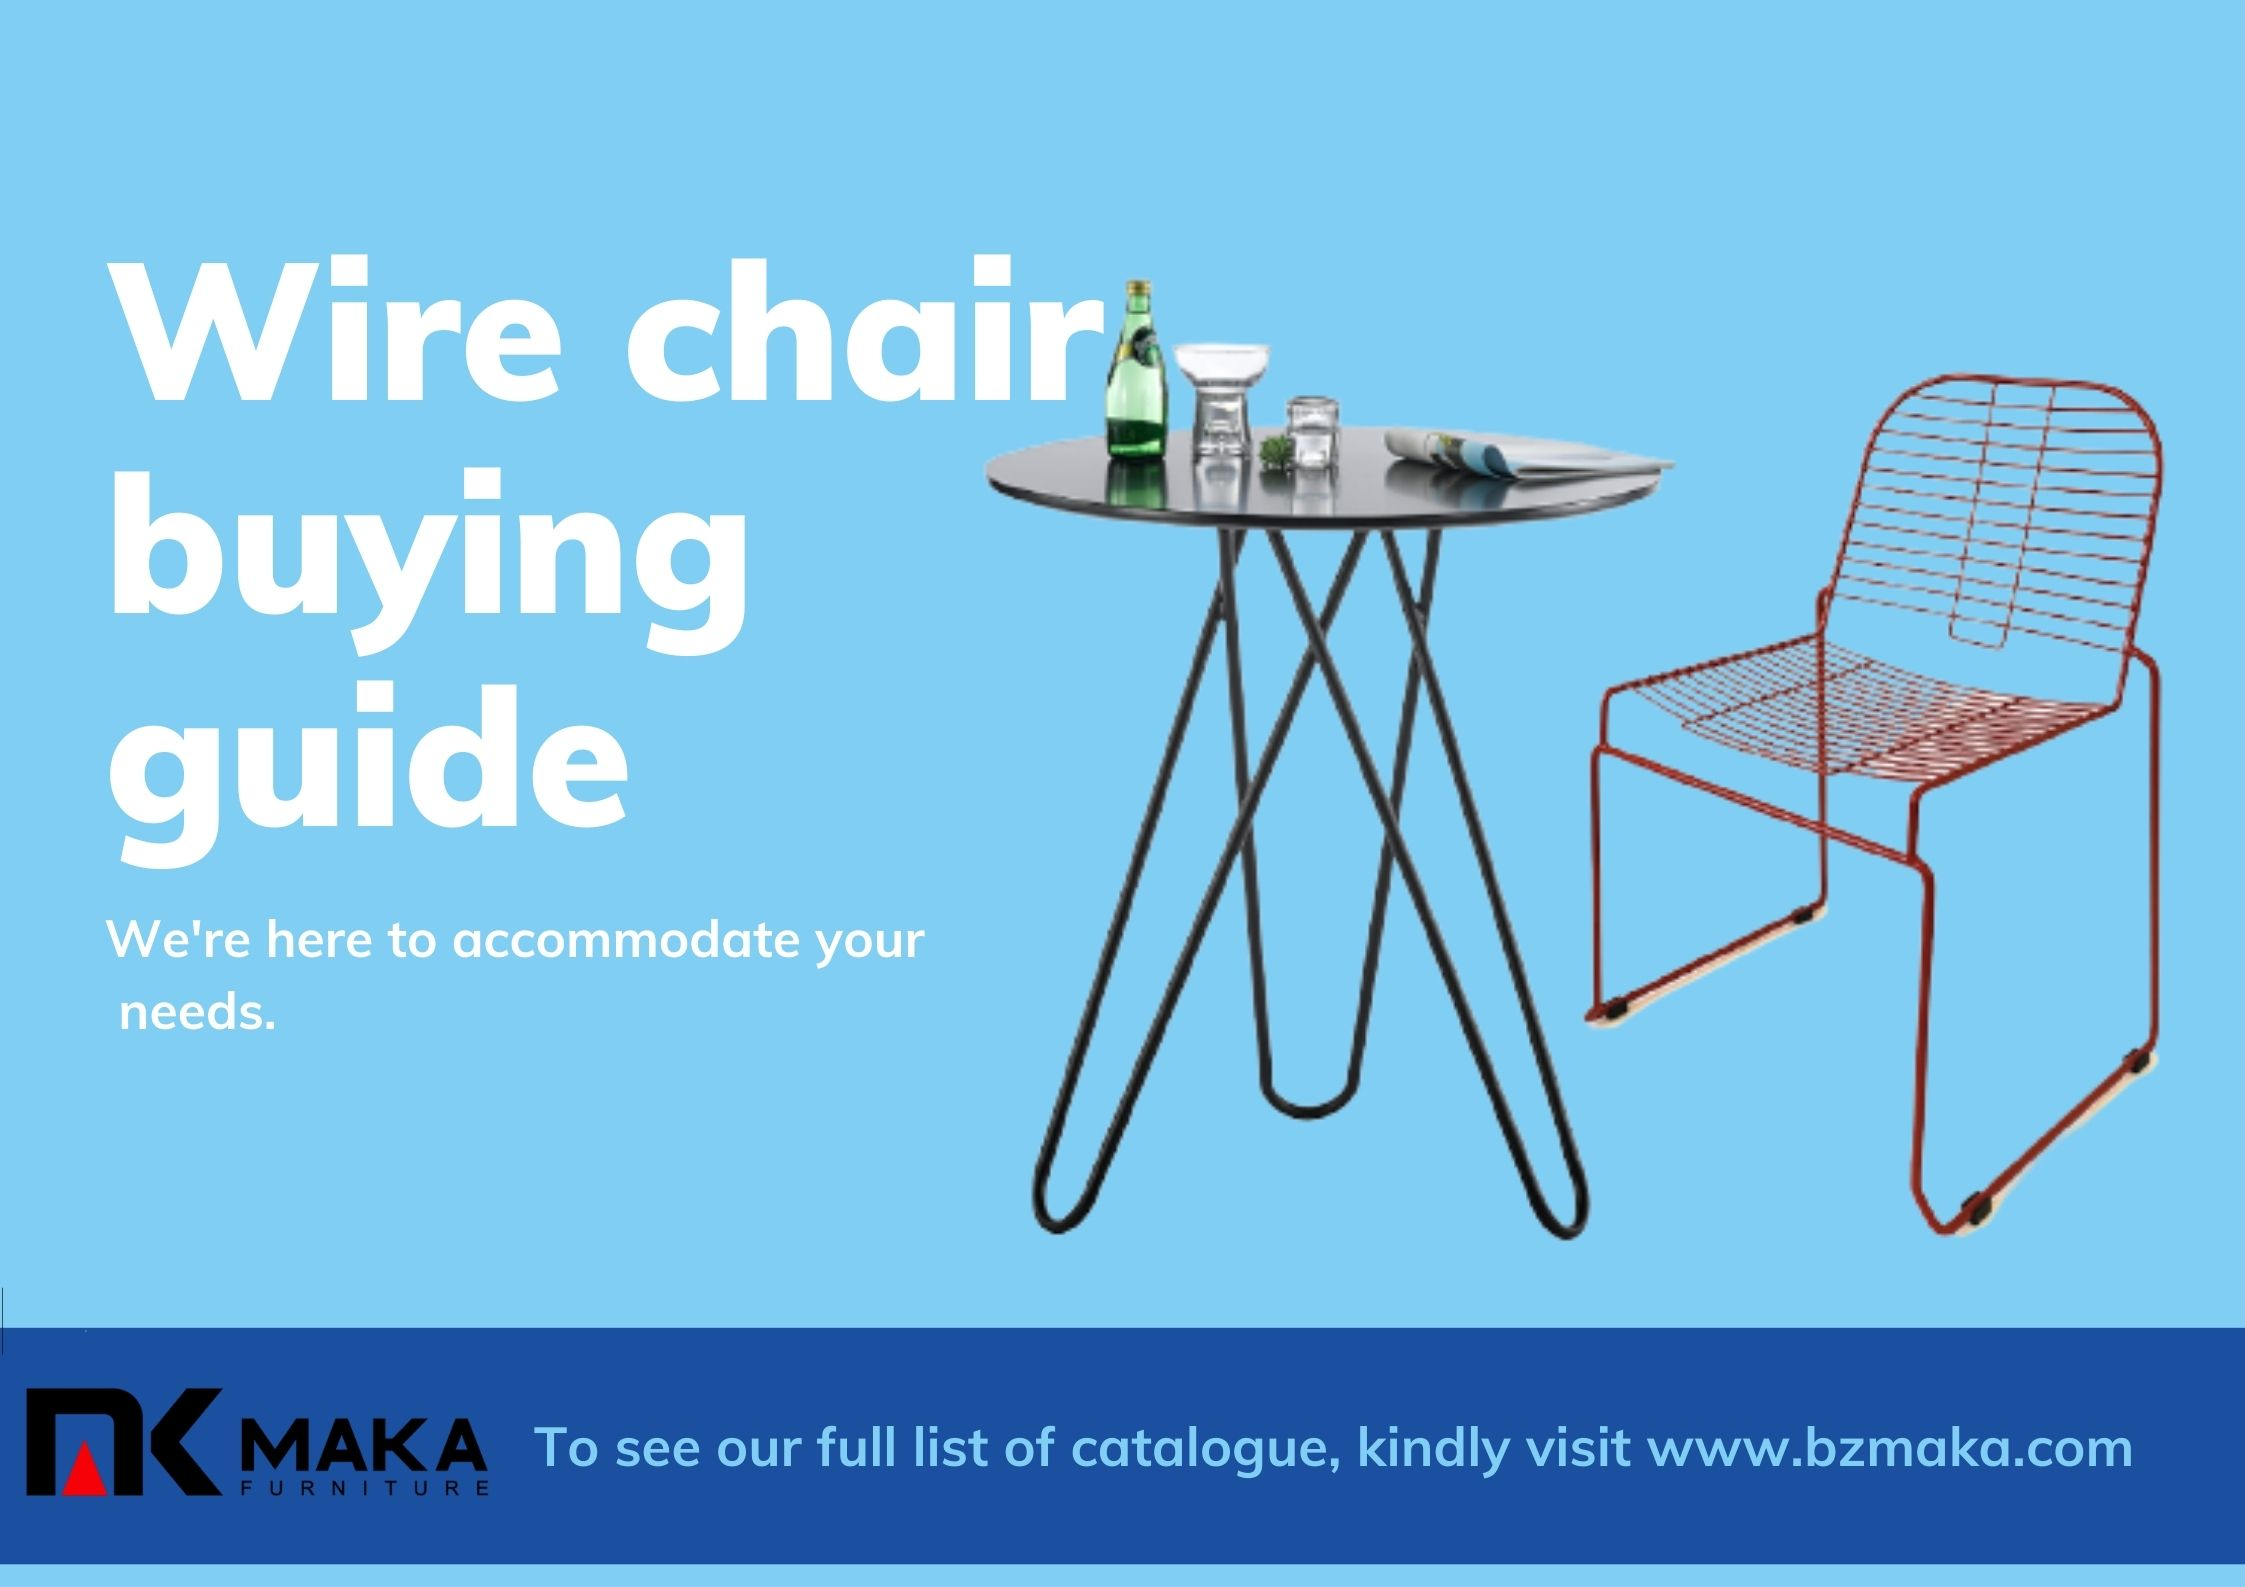 Wire chair buying guide